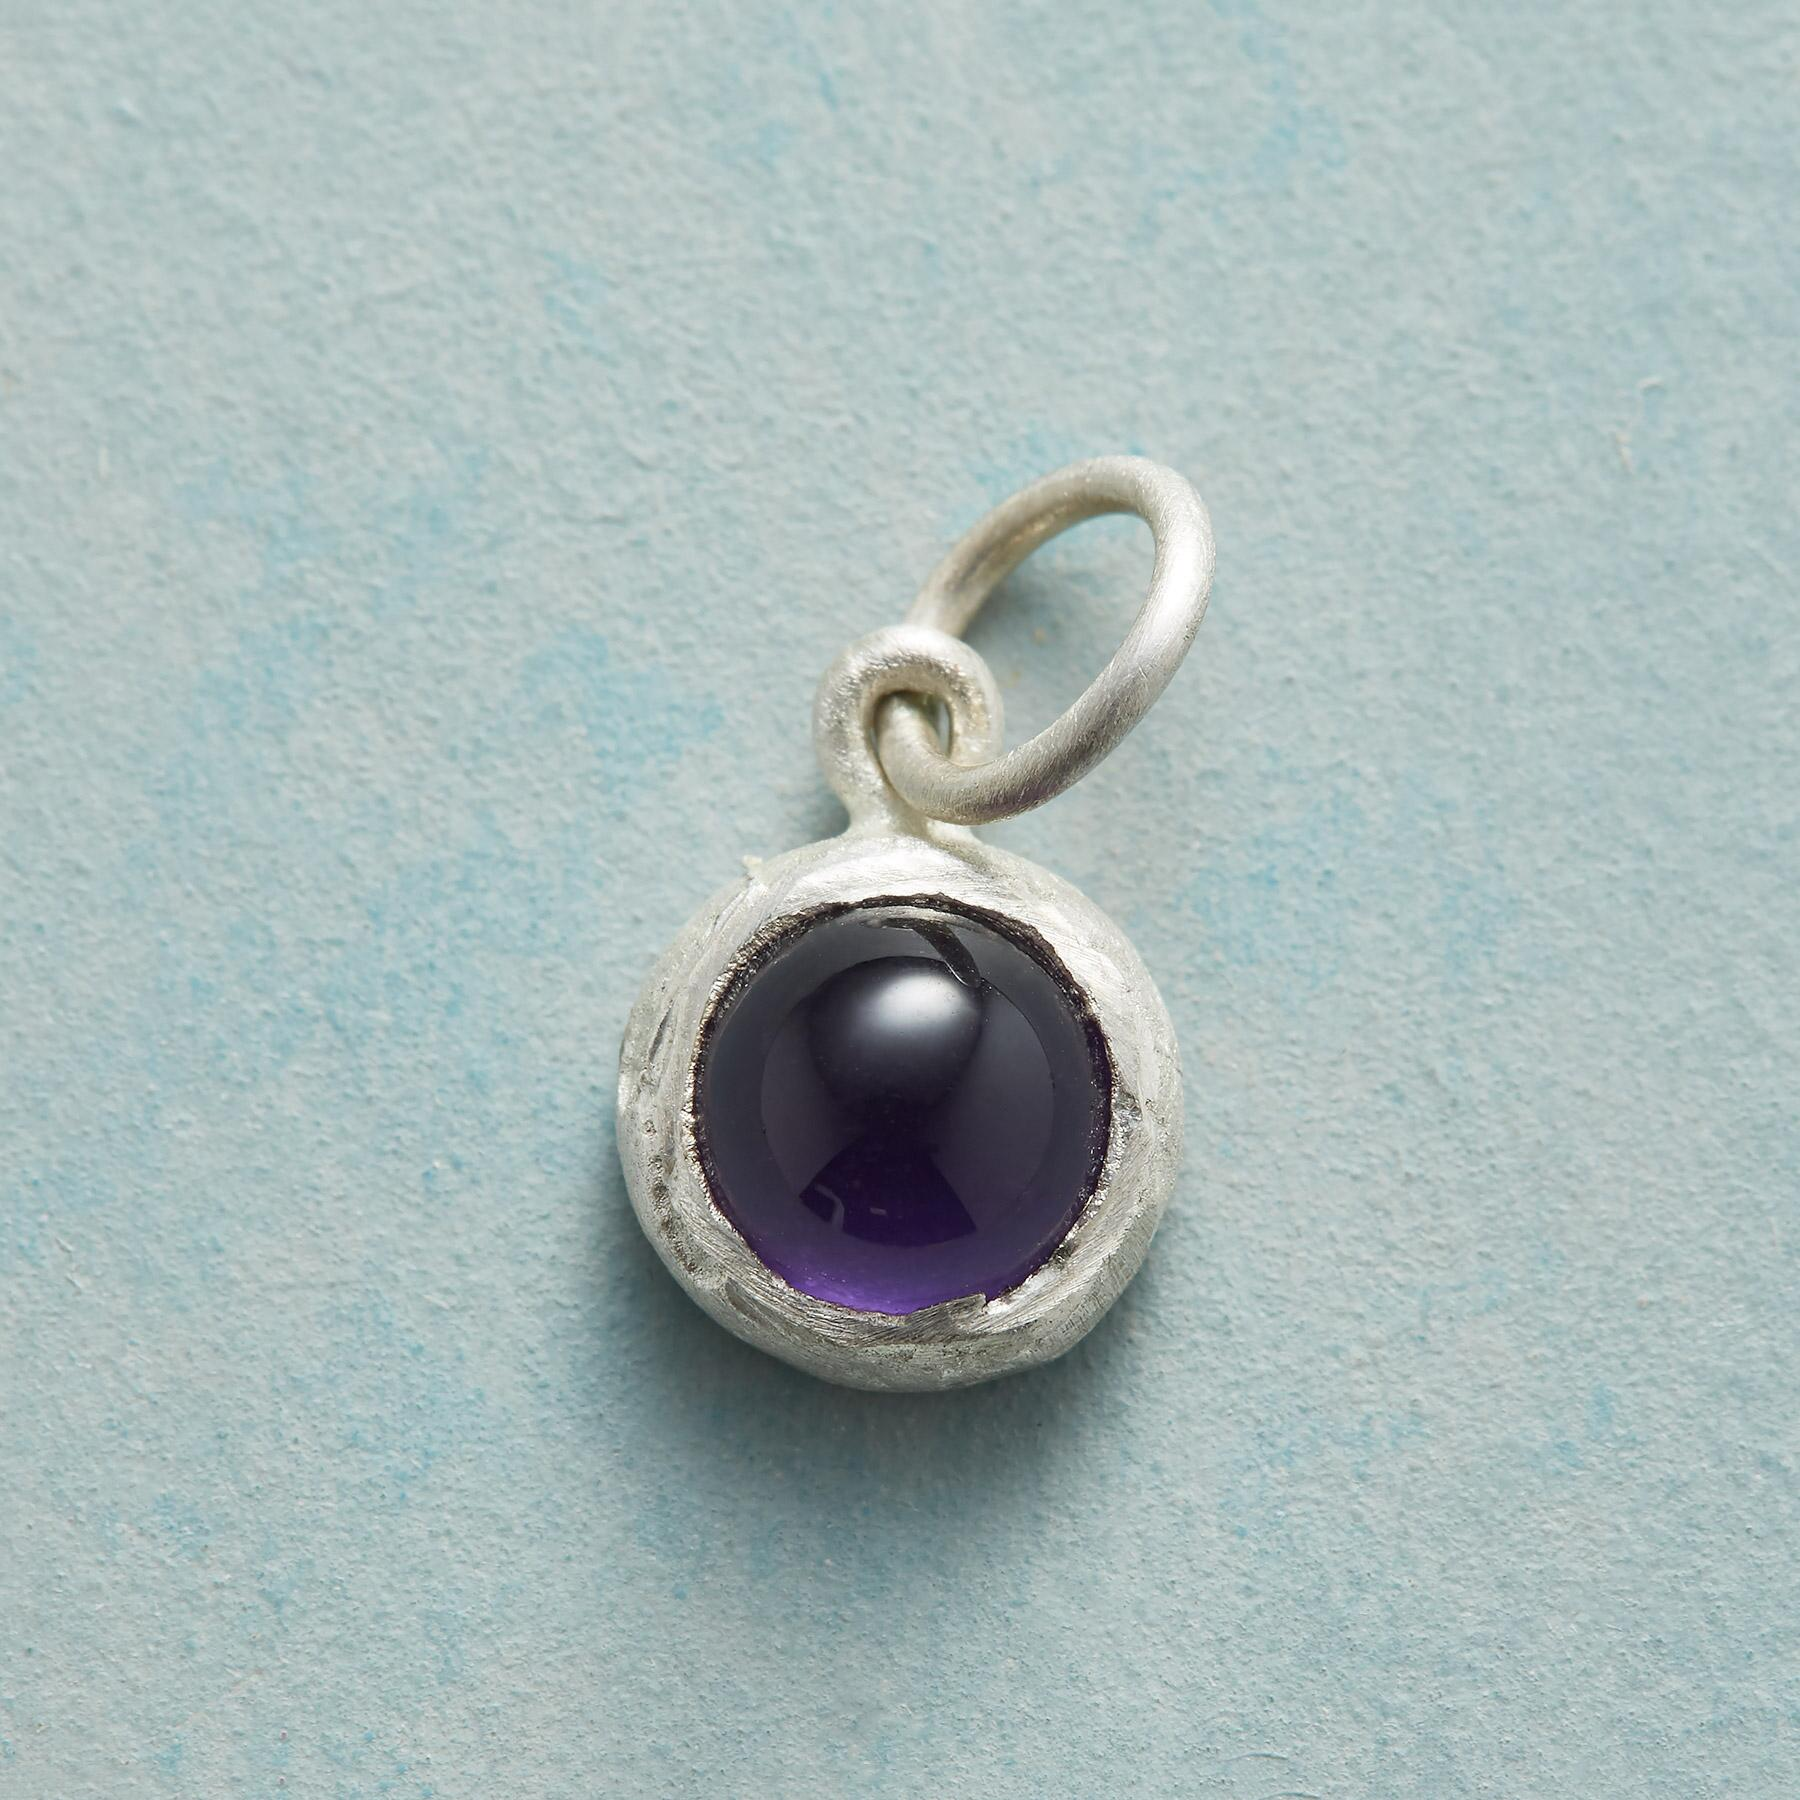 ENCIRCLED BIRTHSTONE CHARM: View 1